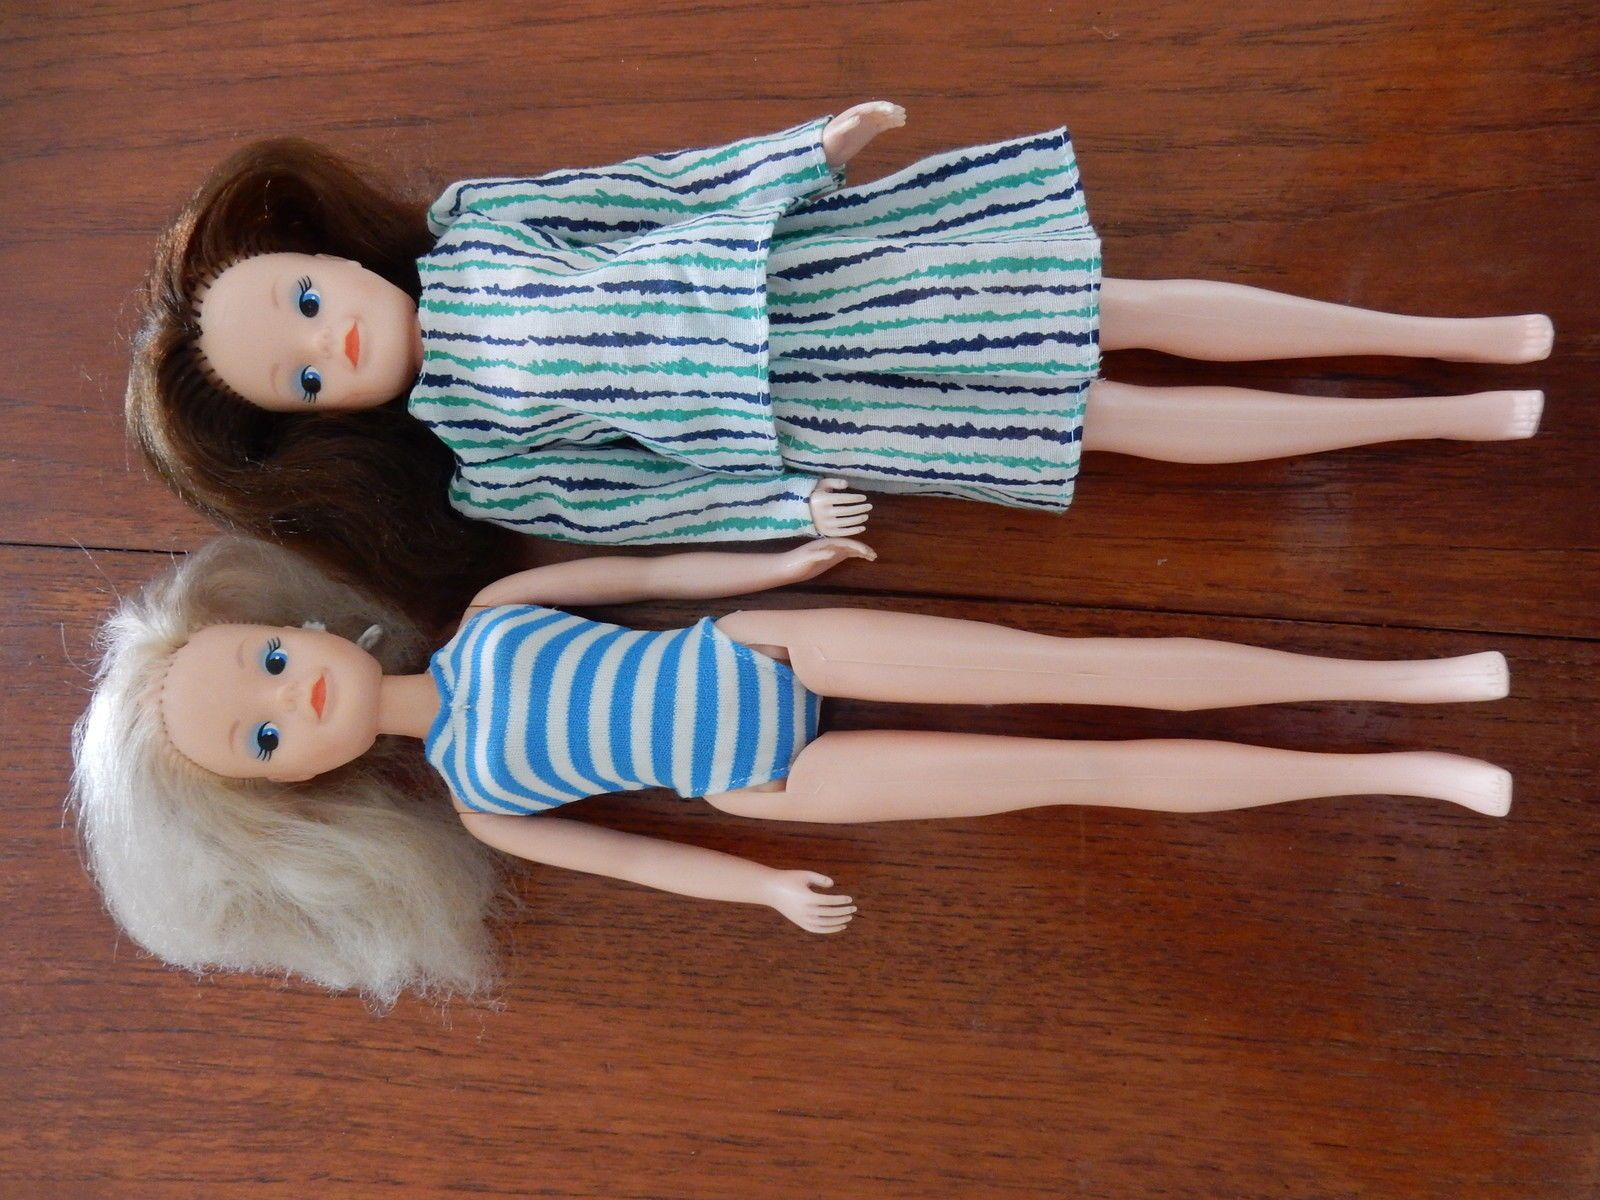 Two lovely Sindy dolls, 1 blonde, 1 brunette, plus clothing and hangers | 21+3.5